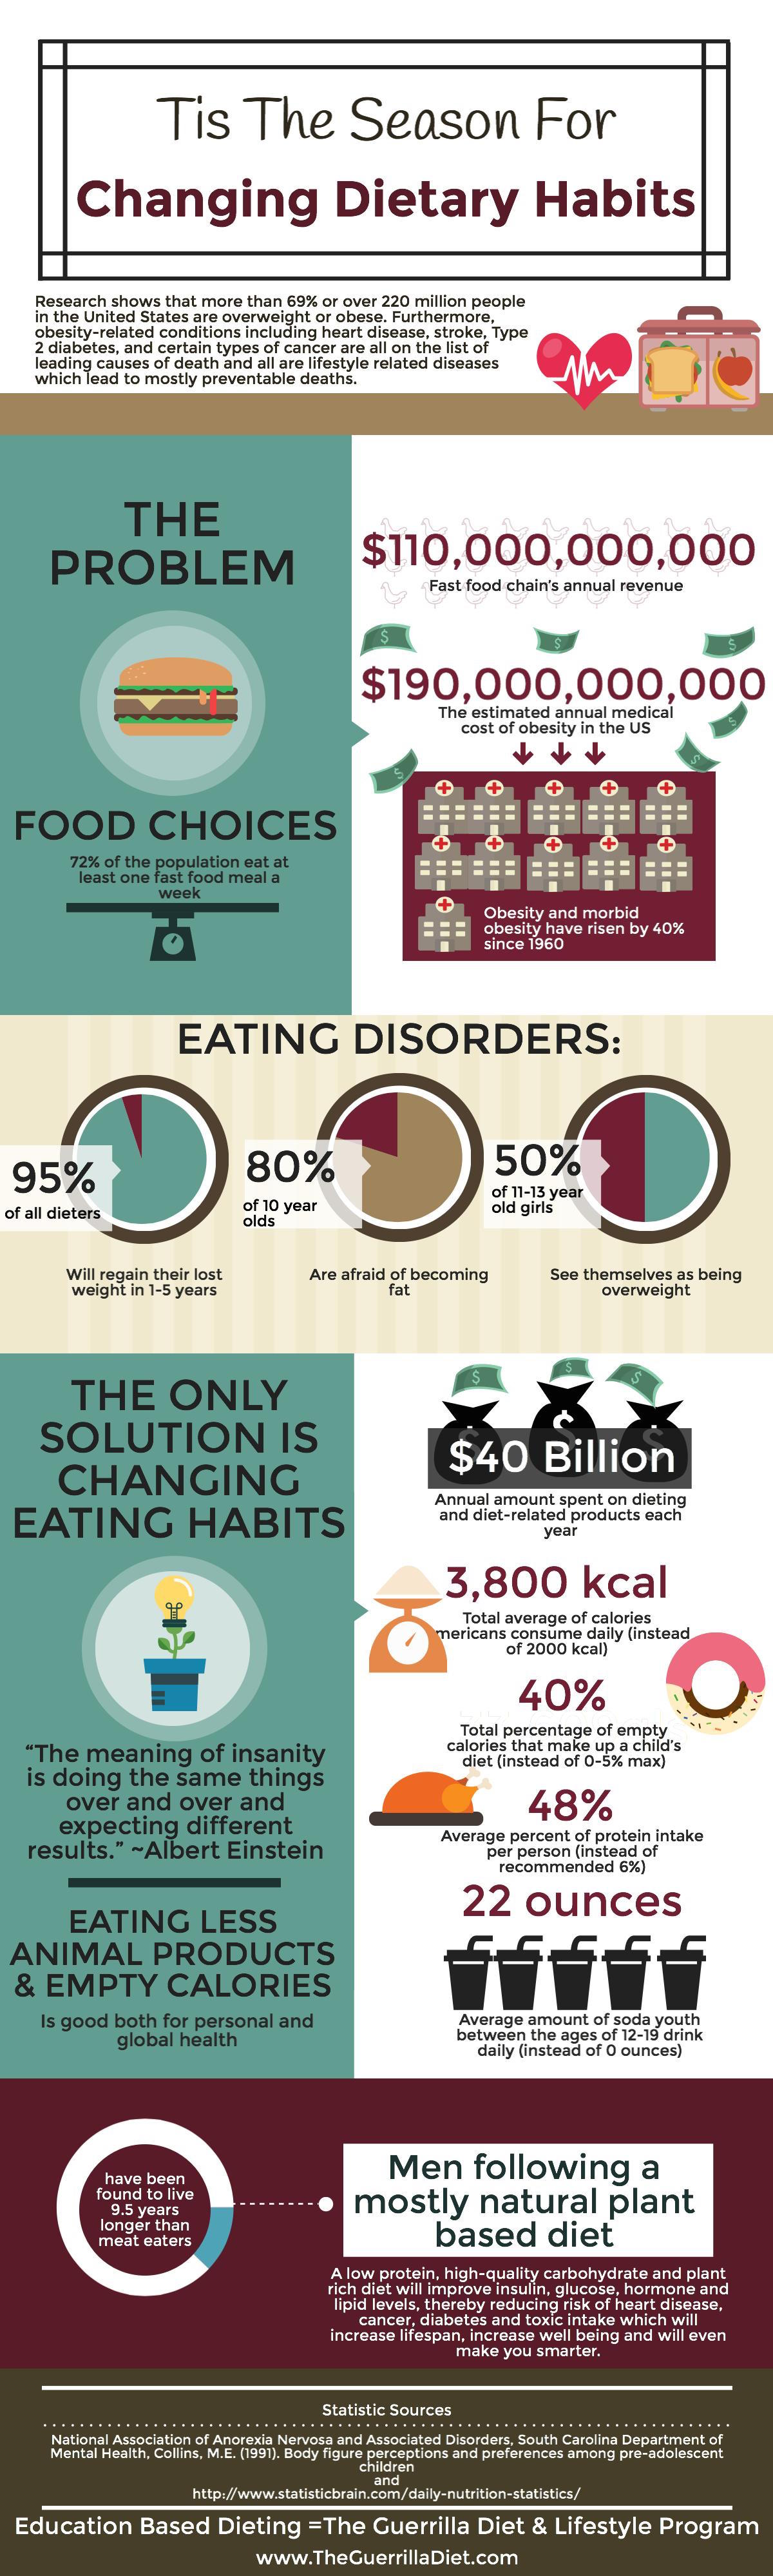 infographic - changing food habits